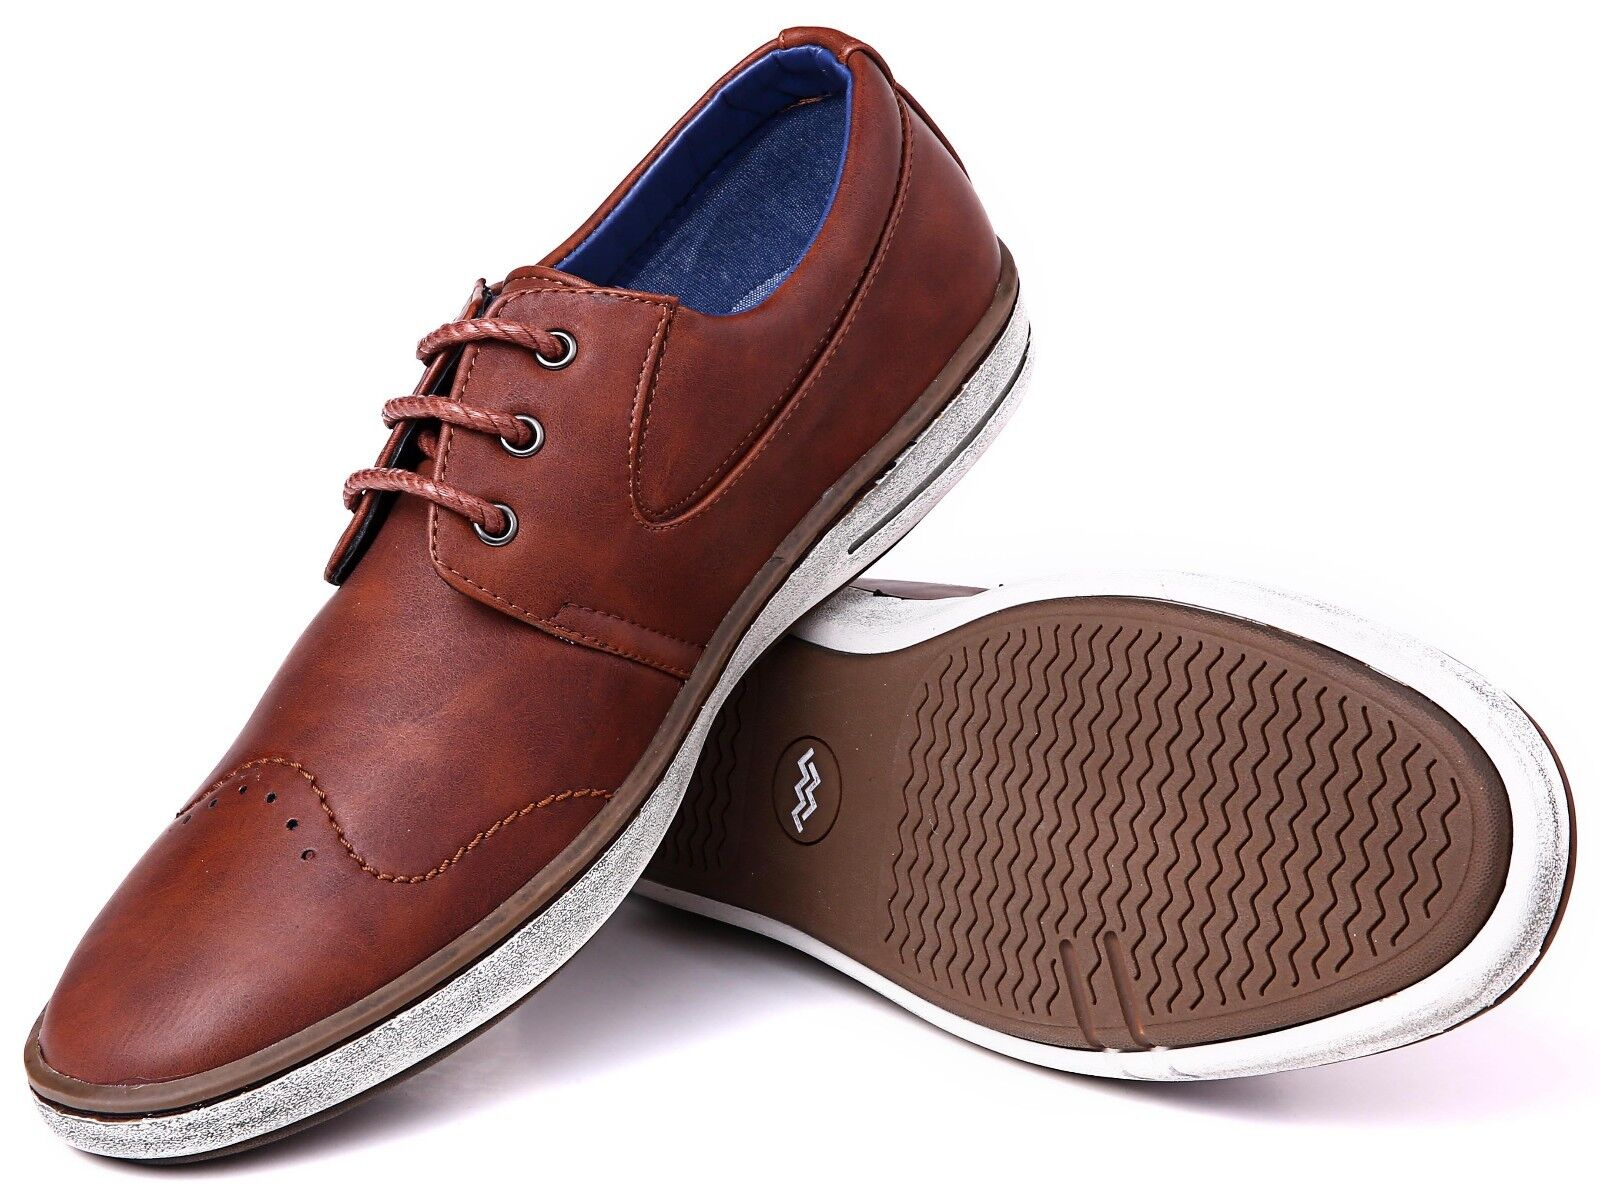 Mio Marino, Mens Dress Shoes - Fashion Casual Oxford Shoes for Men